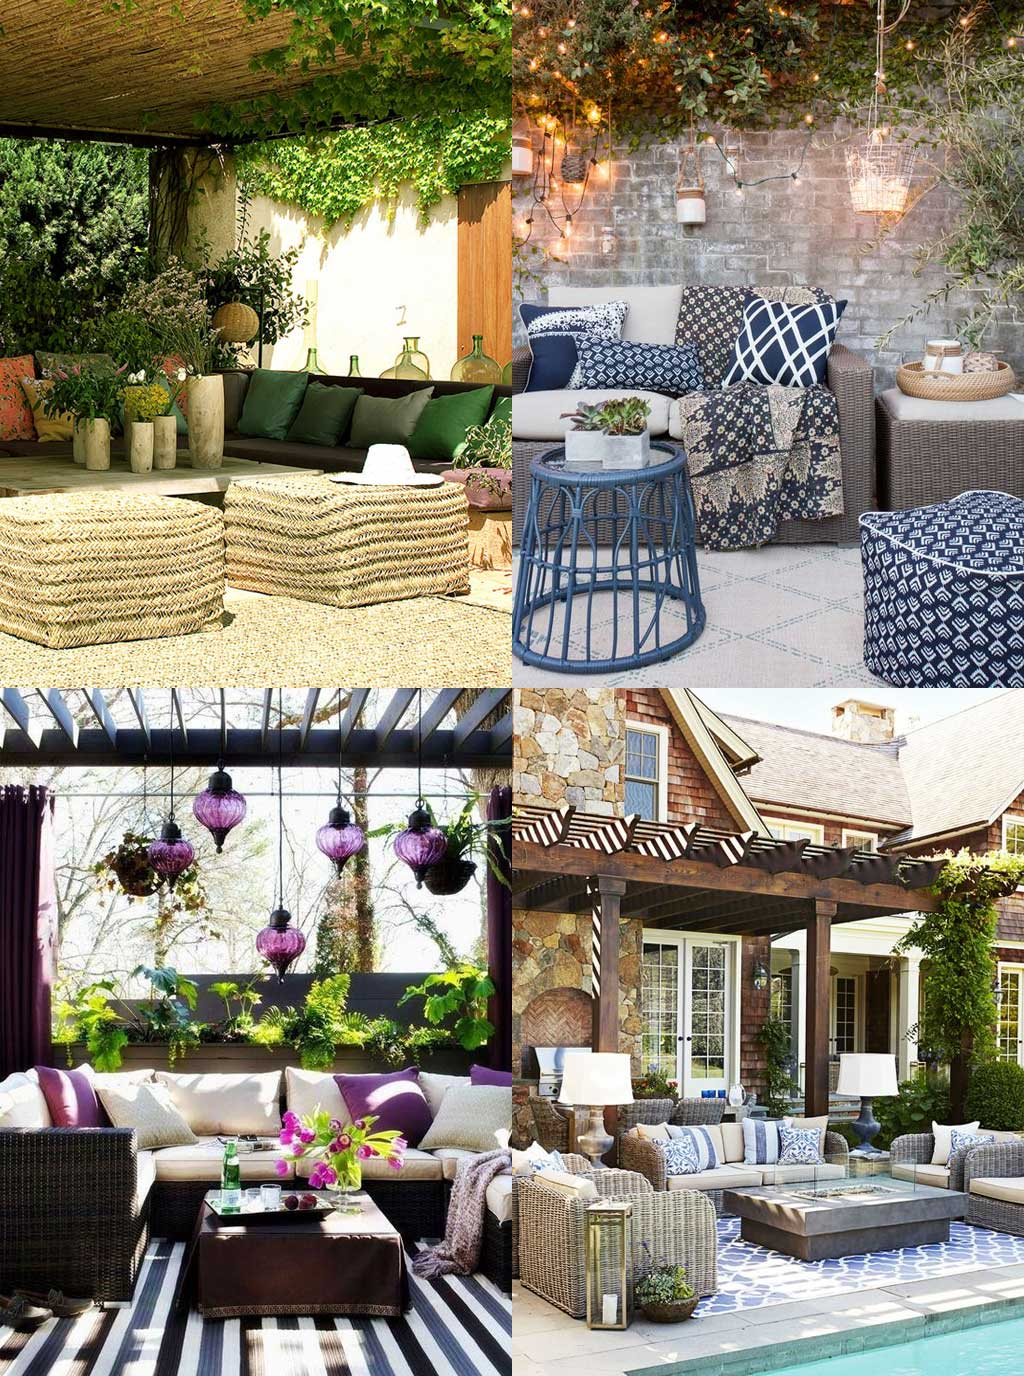 Social Patio Design Ideas - Hutsly